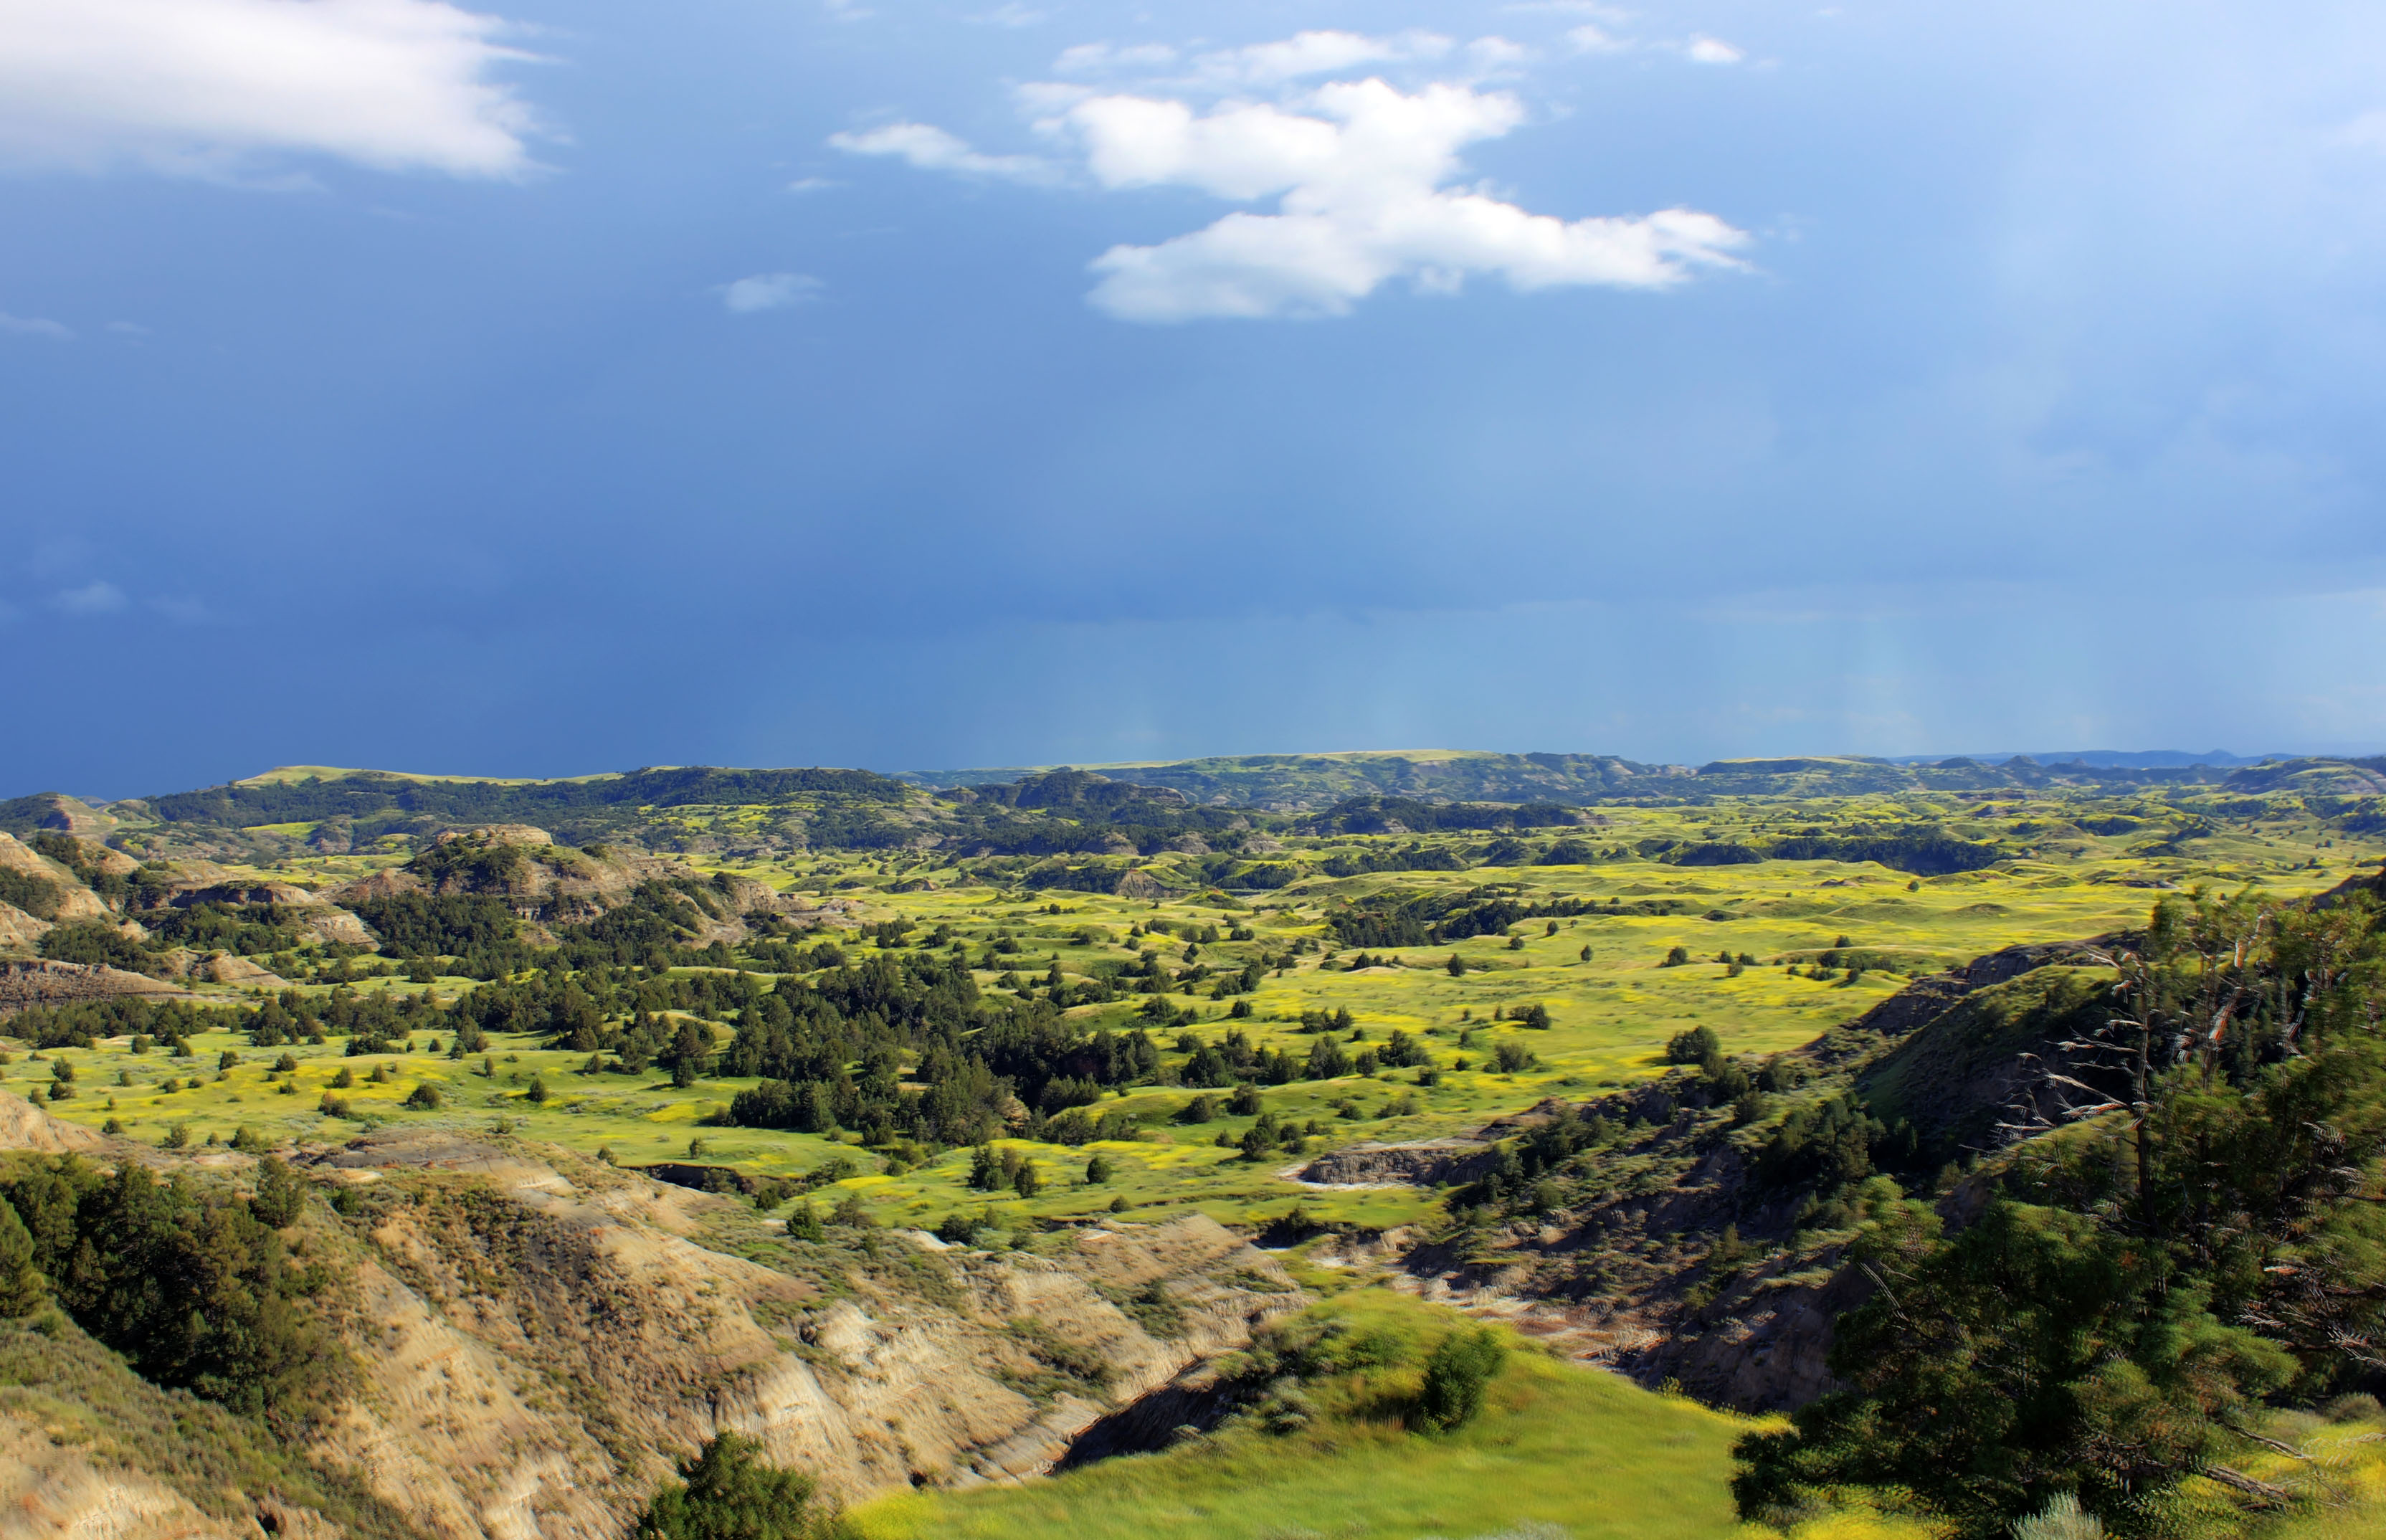 Rain In The Valley At Theodore Roosevelt National Park North Dakota Image